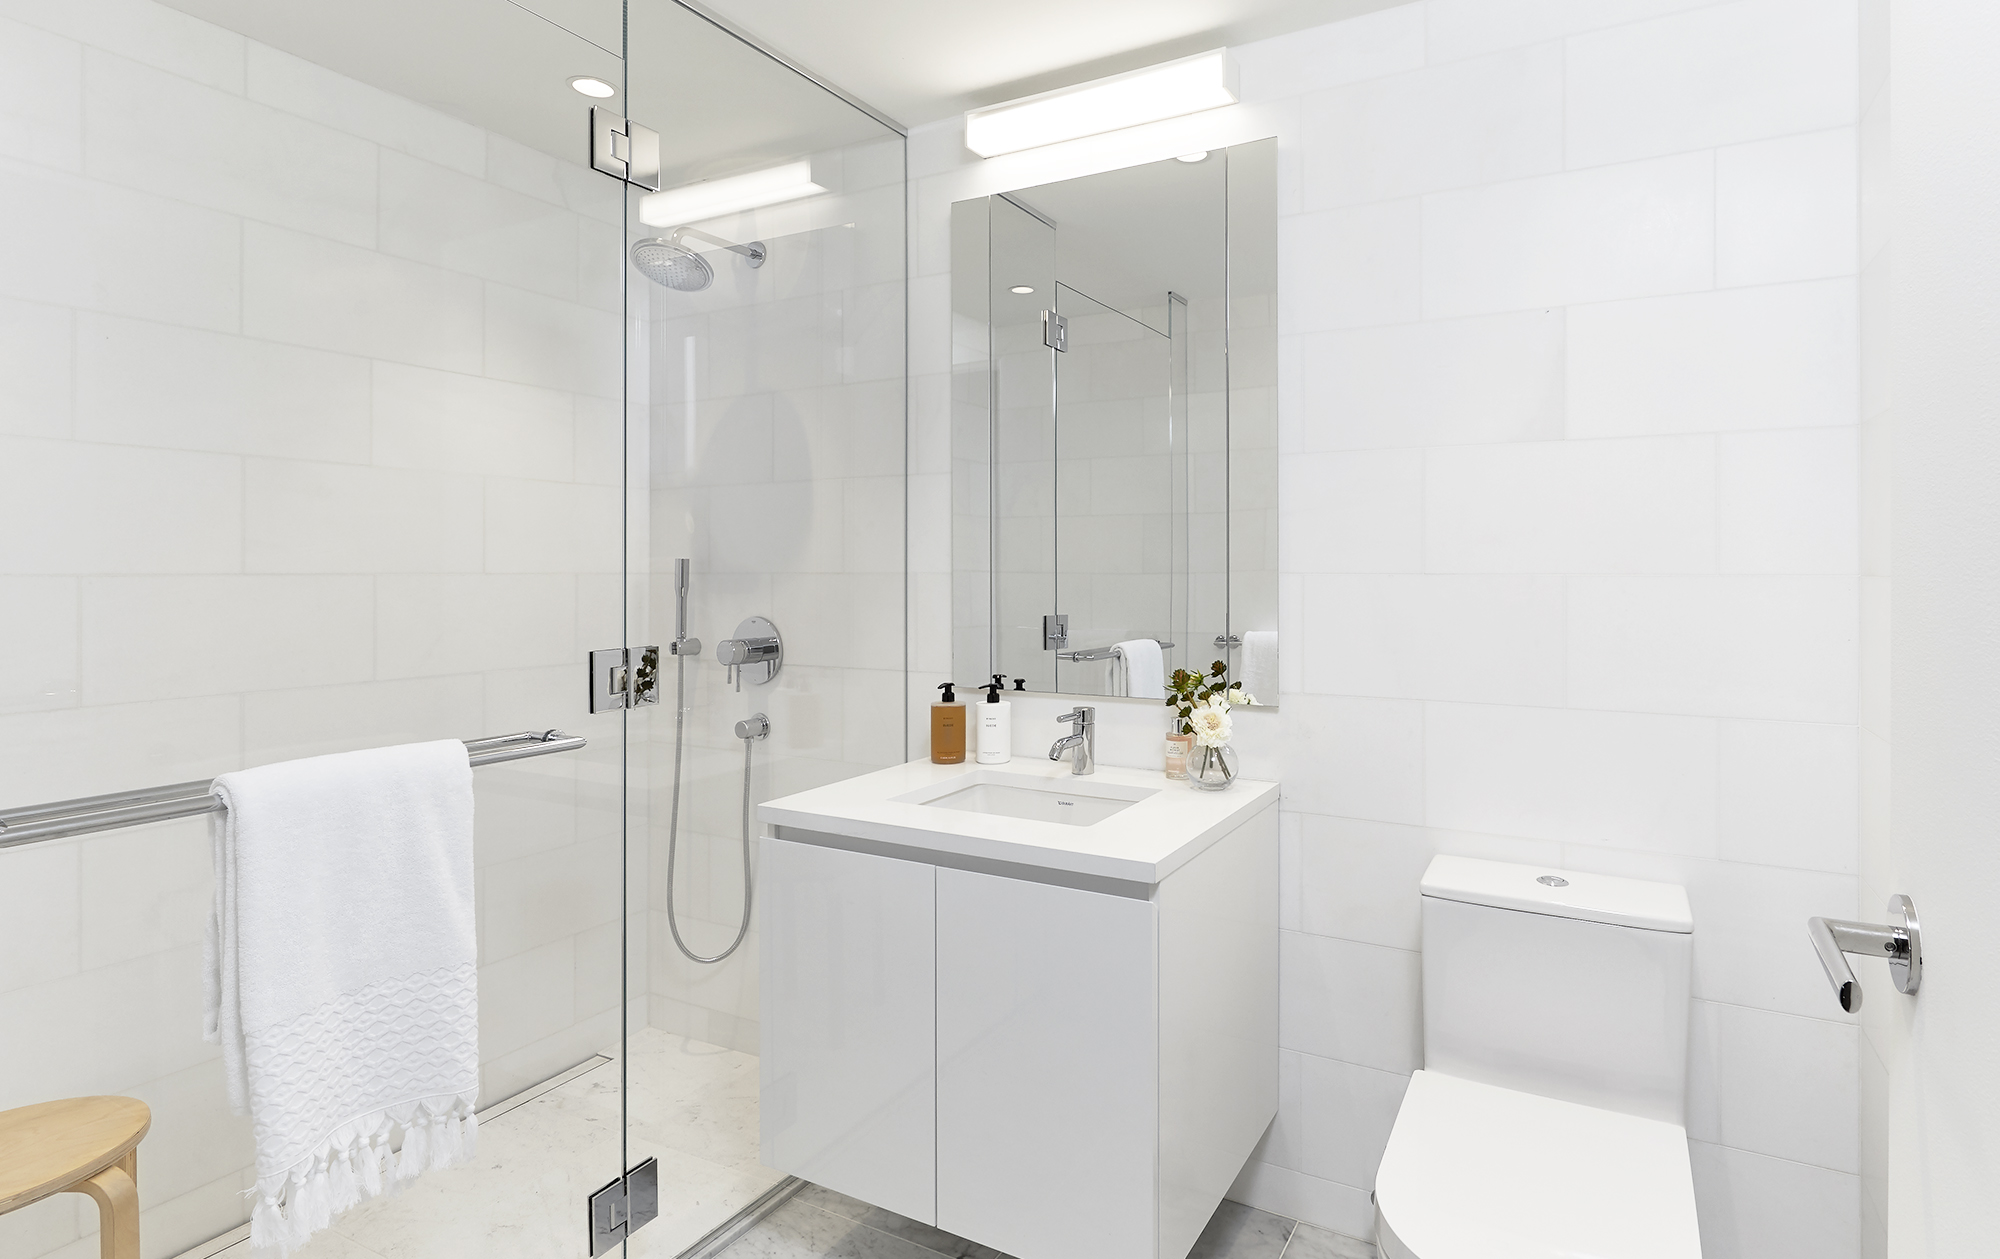 Carrara marble stone floors throughout the bathrooms